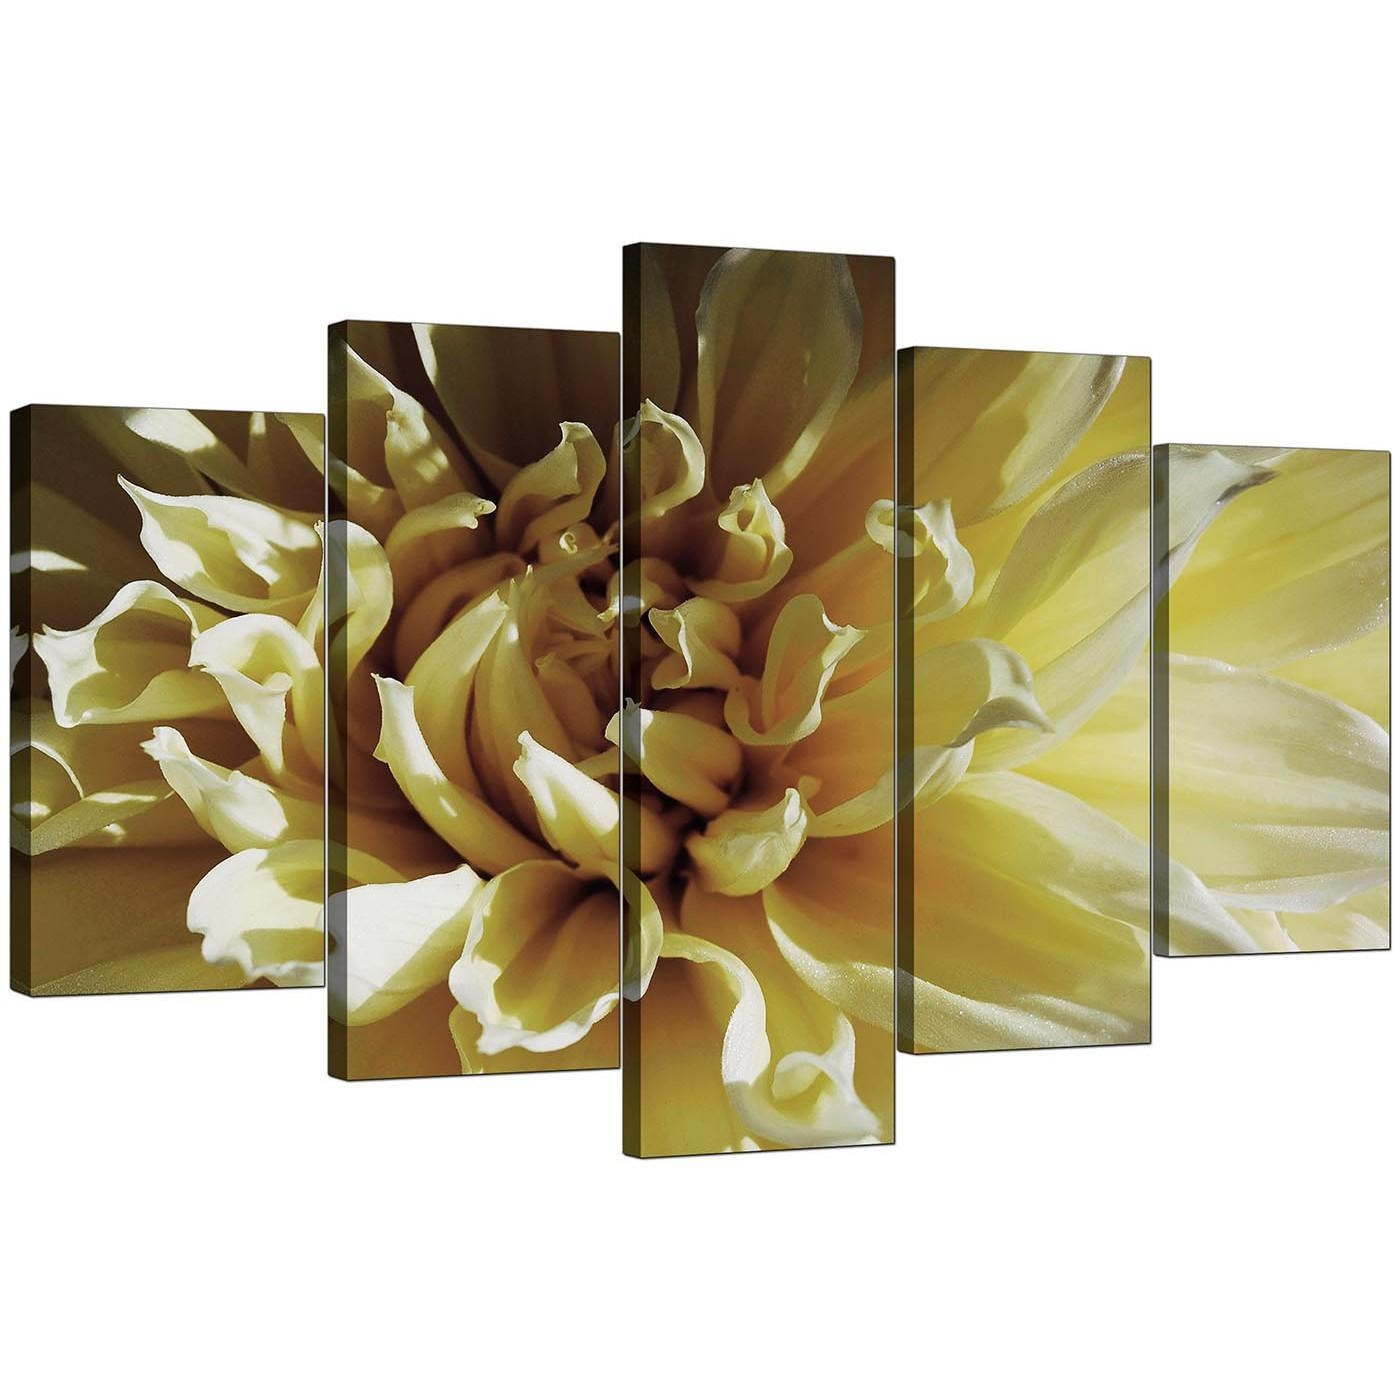 Extra Large Flower Canvas Wall Art 5 Piece In Cream With Regard To Flower Wall Art Canvas (View 9 of 20)